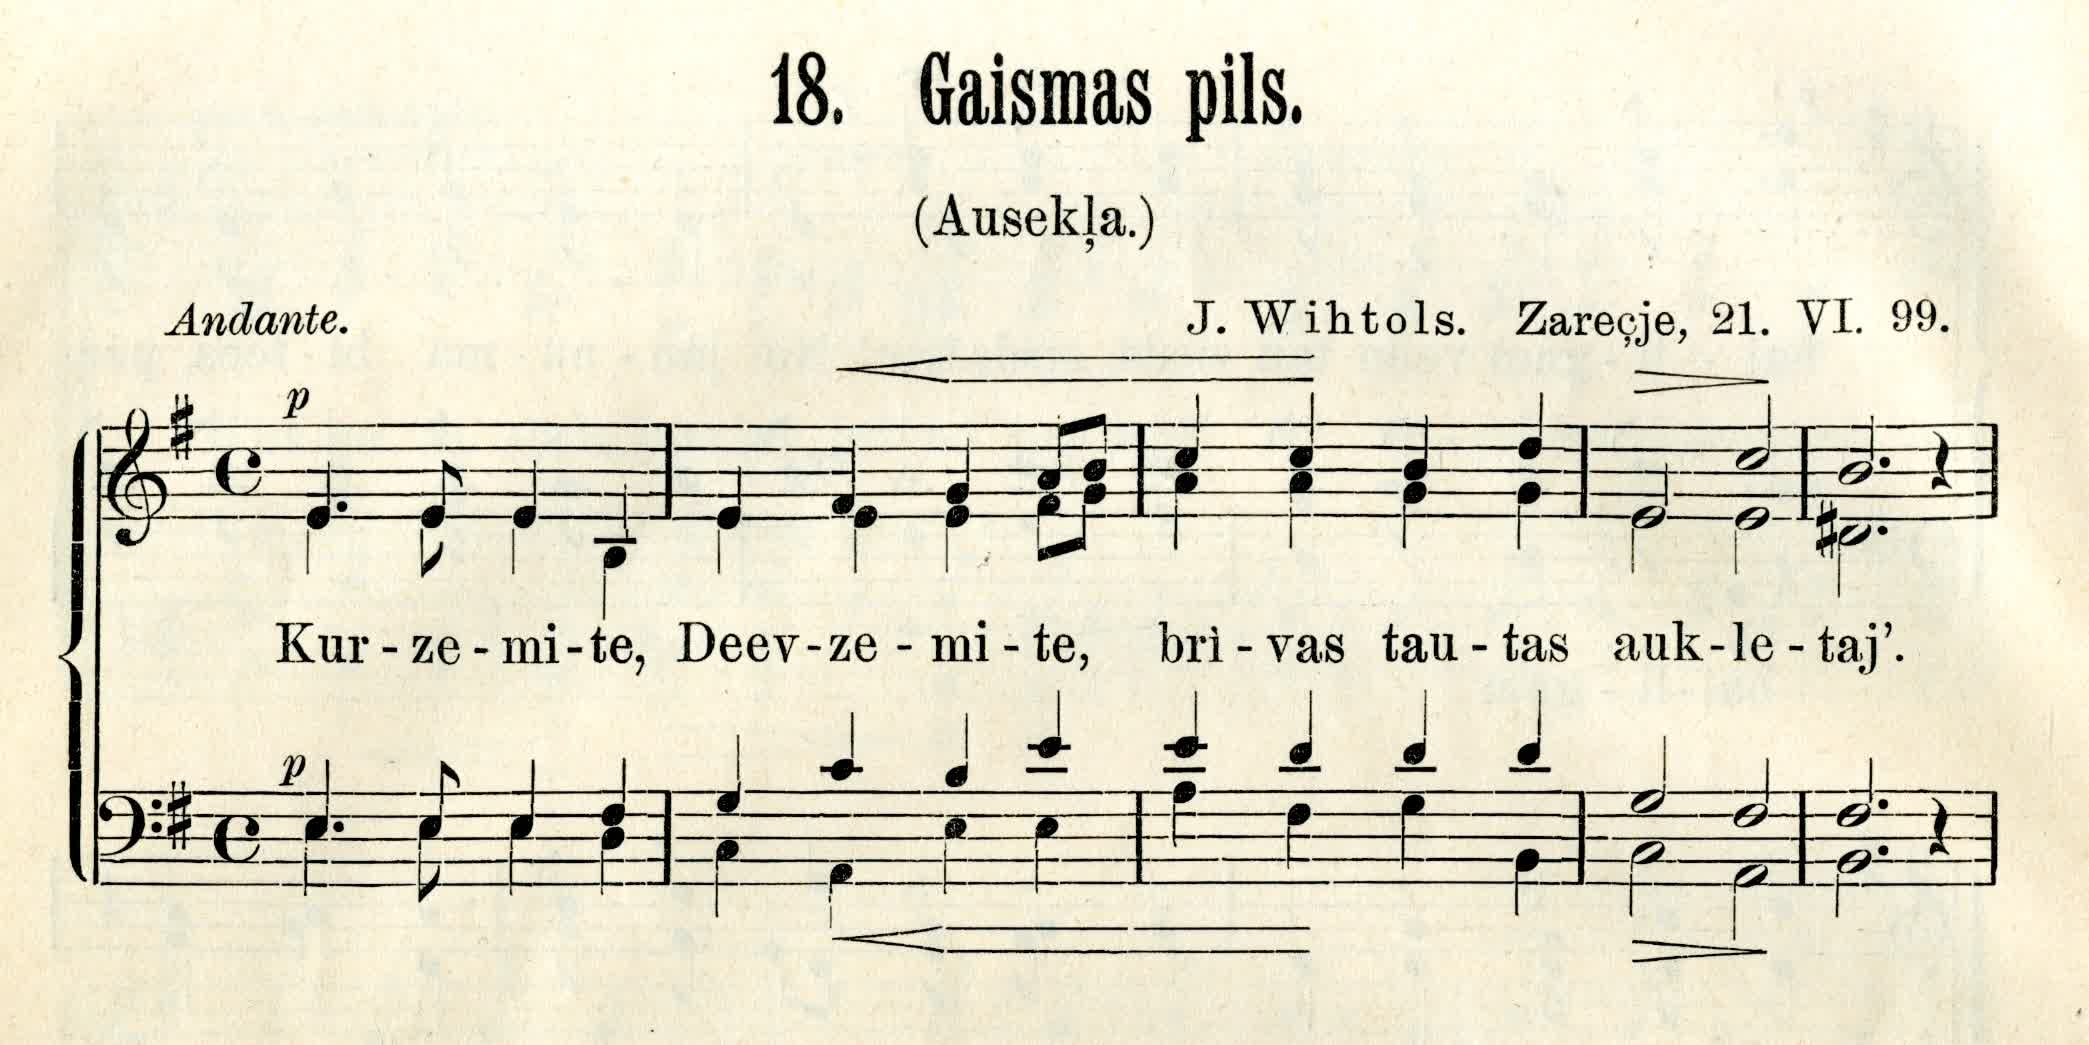 Choral song